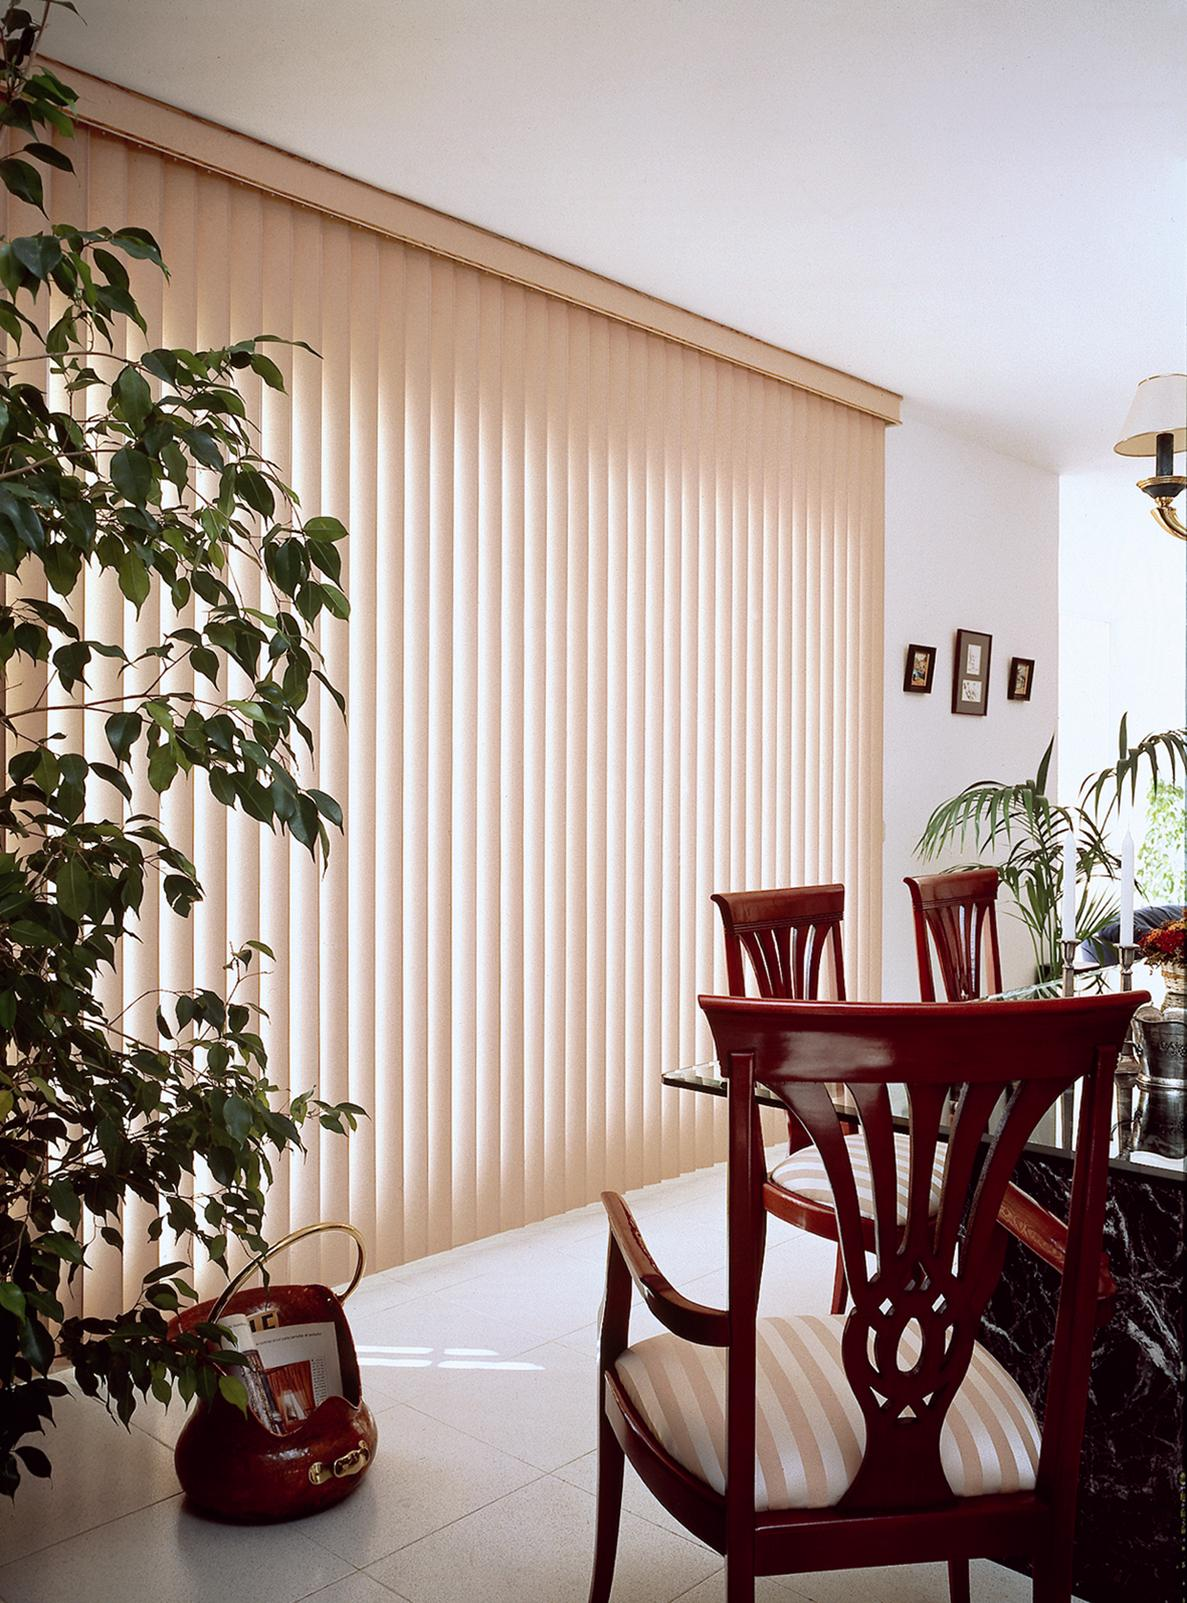 Vertical Blinds Pvc en disenos